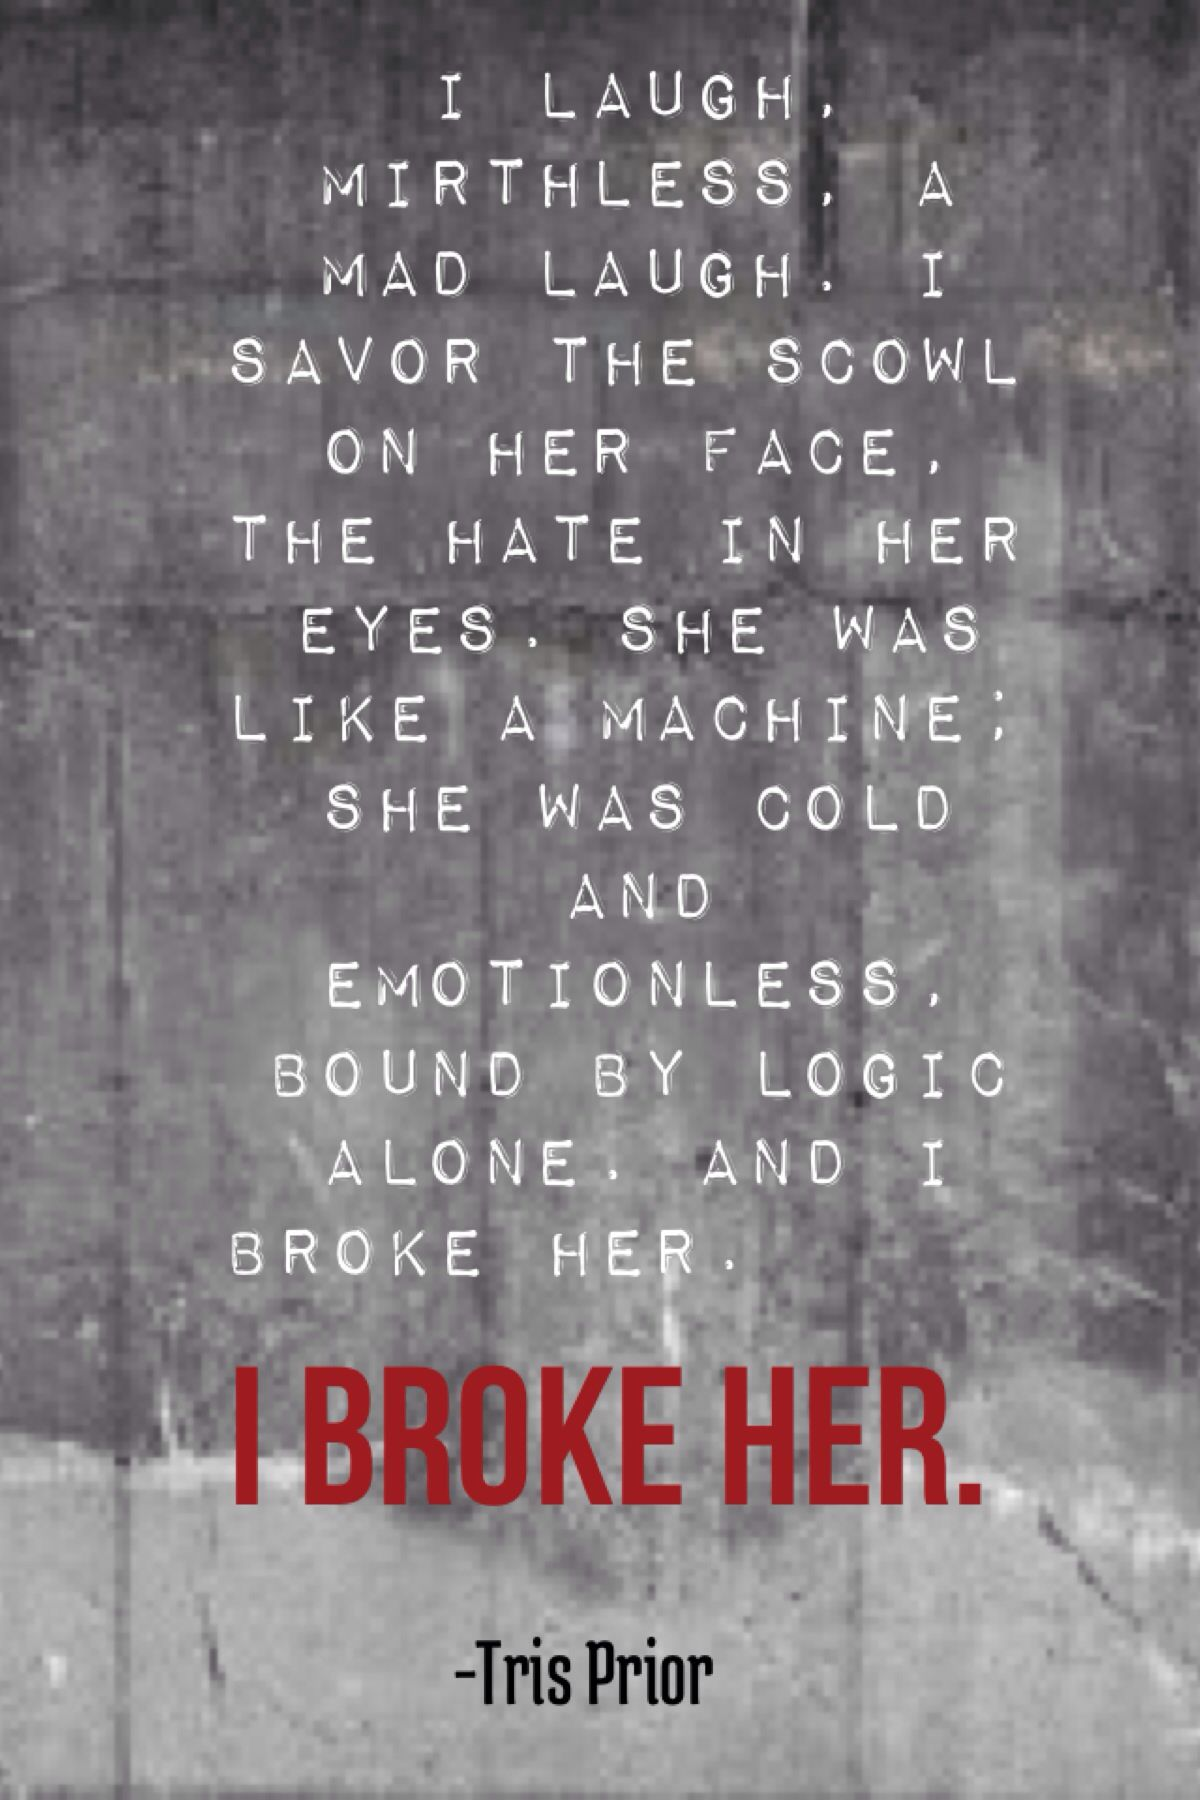 Insurgent quote by Veronica Roth, from the Divergent ...